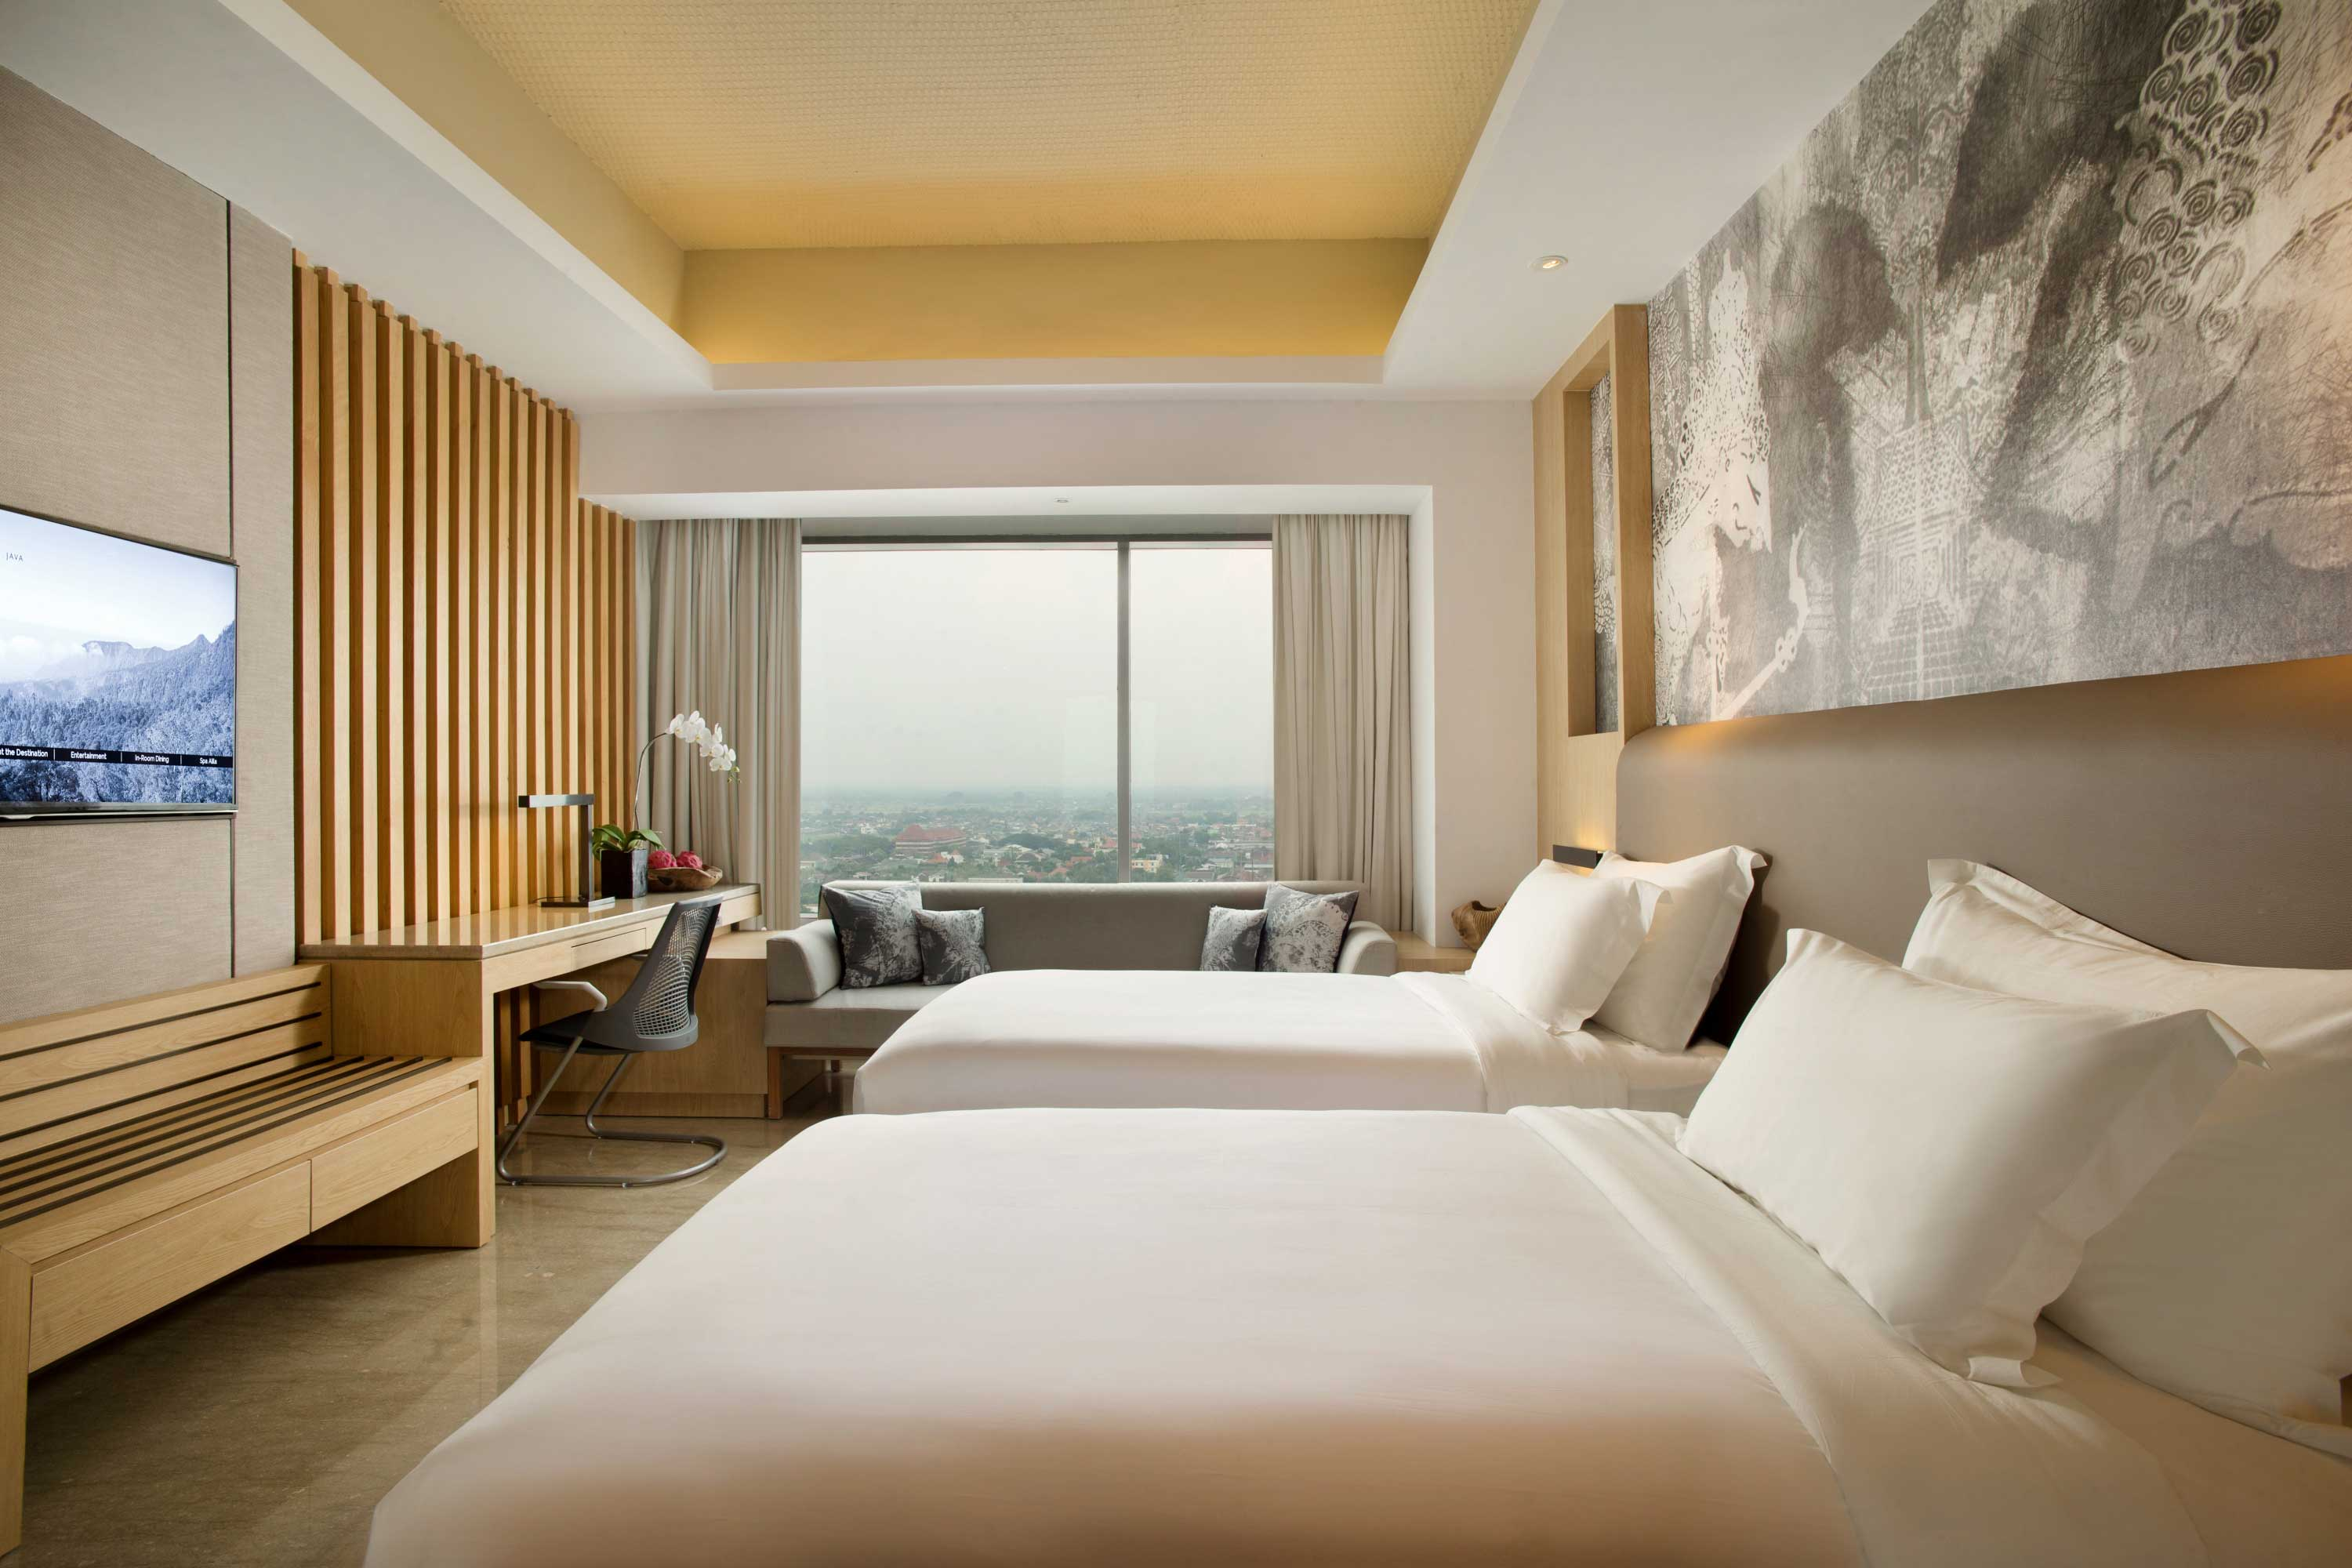 Alila Solo-Accommodation-Deluxe-Room-02 shower